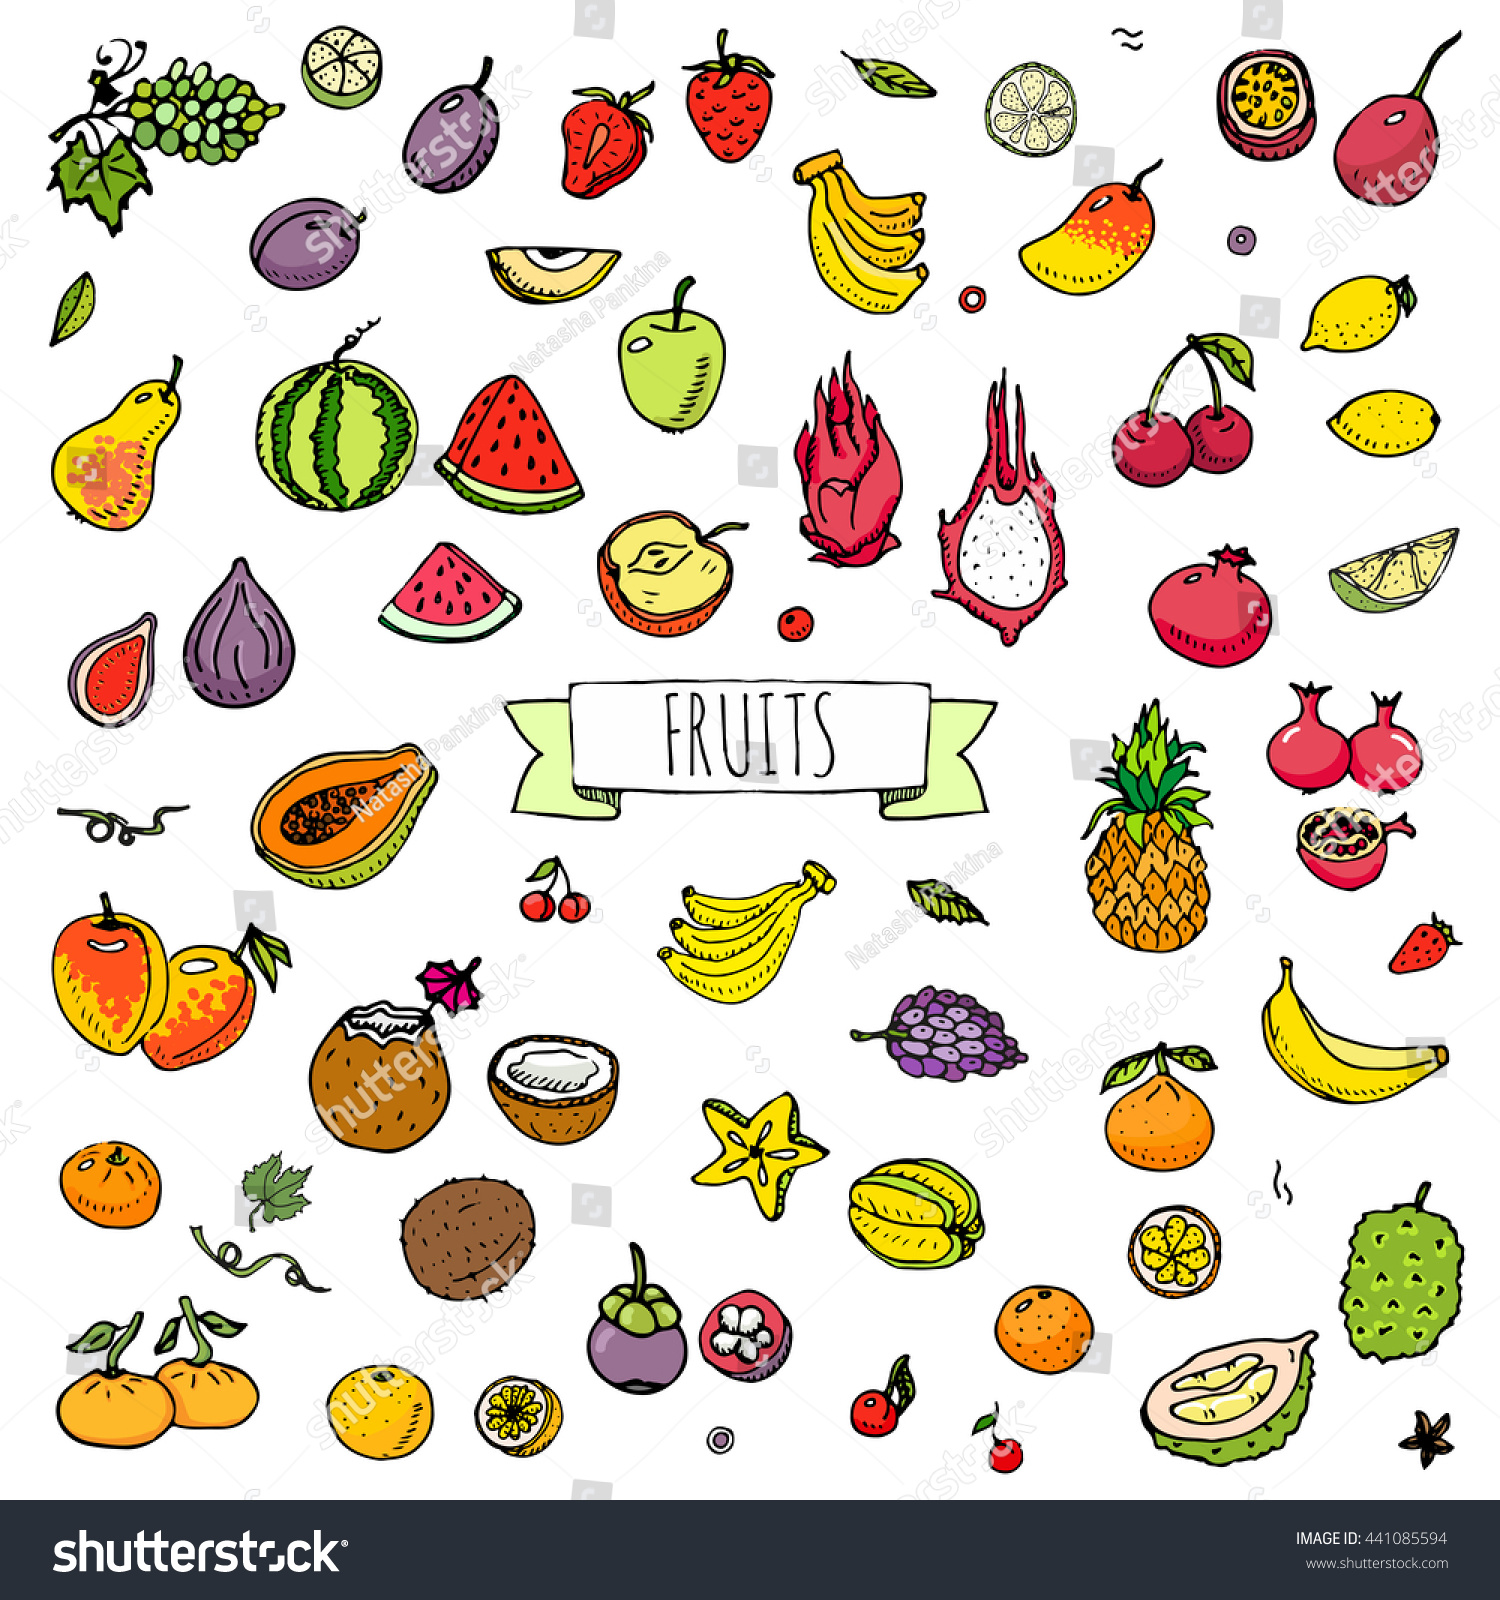 Hand drawn doodle tropical fruits icons set Vector illustration seasonal berry symbols collection Cartoon different kinds of sweet vegan food Isolated on white background Sketch style